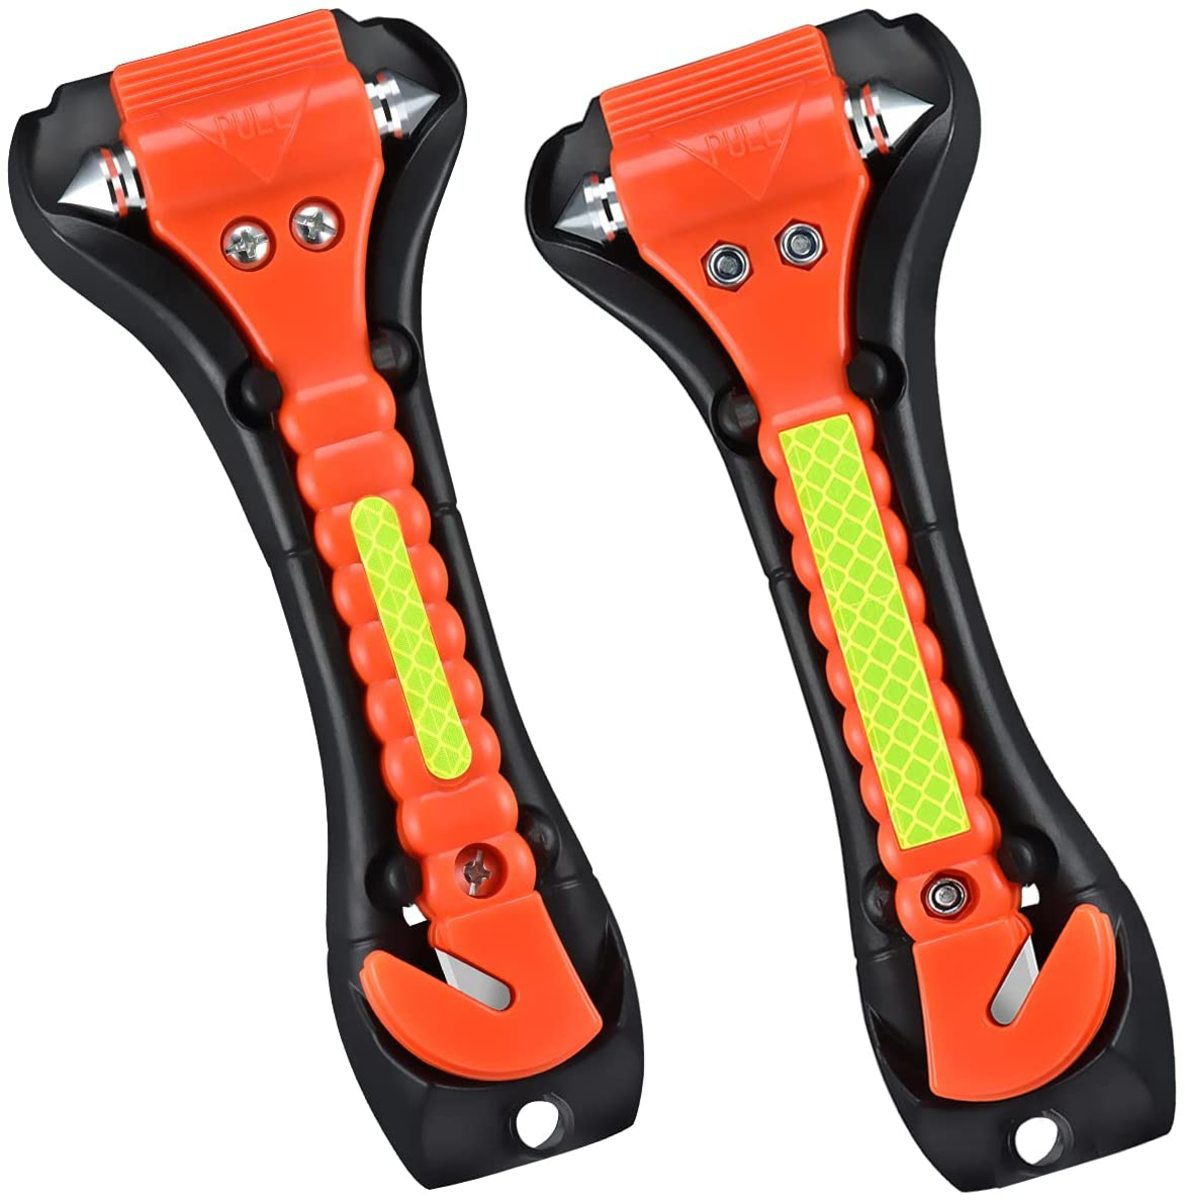 The VT Safety Hammer, Emergency Escape Tool with Car Window Breaker and Seat Belt Cutter